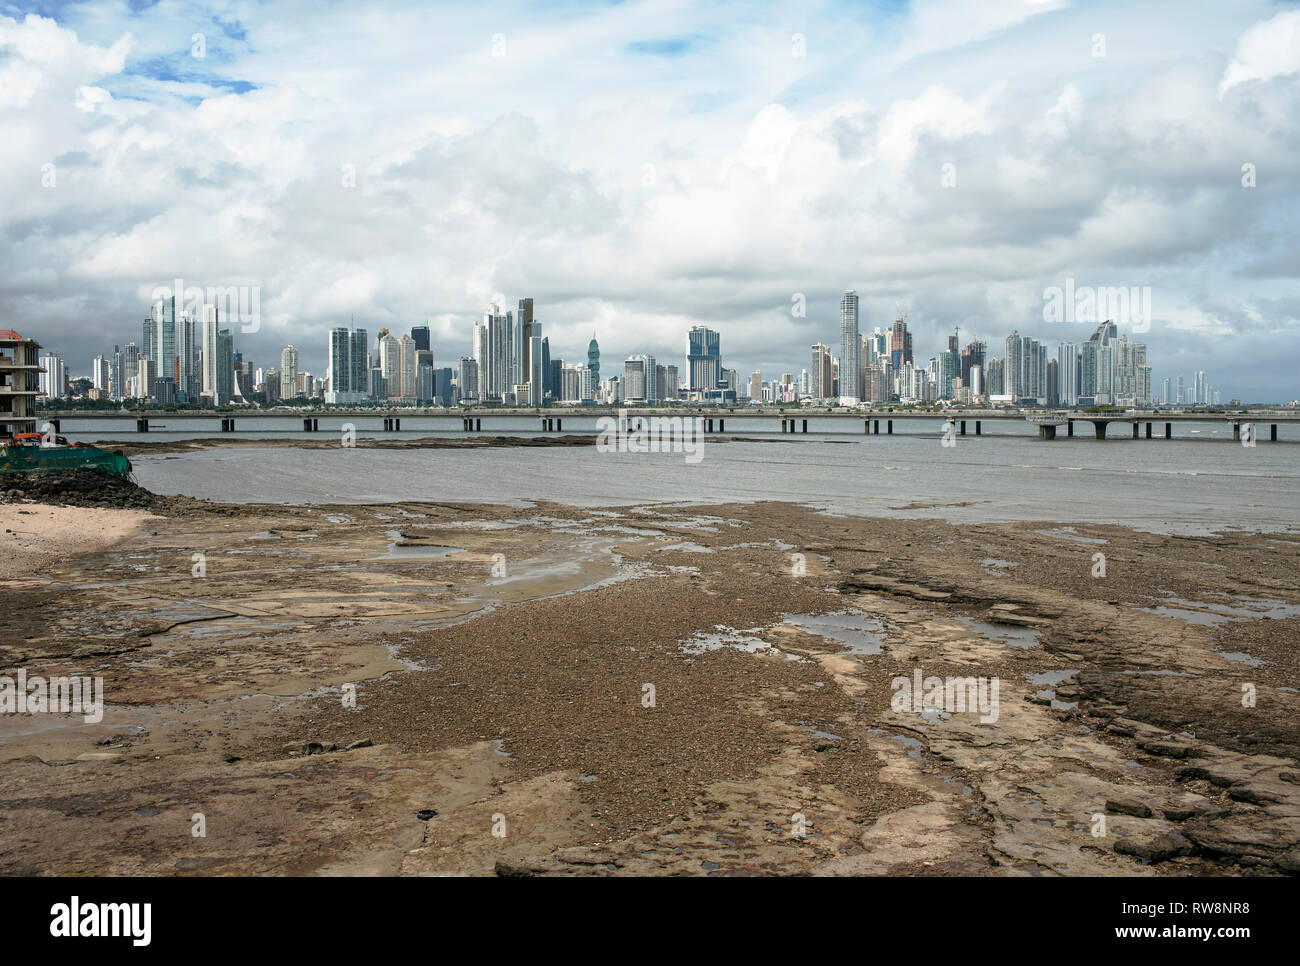 Low tide views of Panama City with Cinta Costera highway and Punta Paitillas impressive skyline in the background. Panama, Central America. Oct 2018 - Stock Image